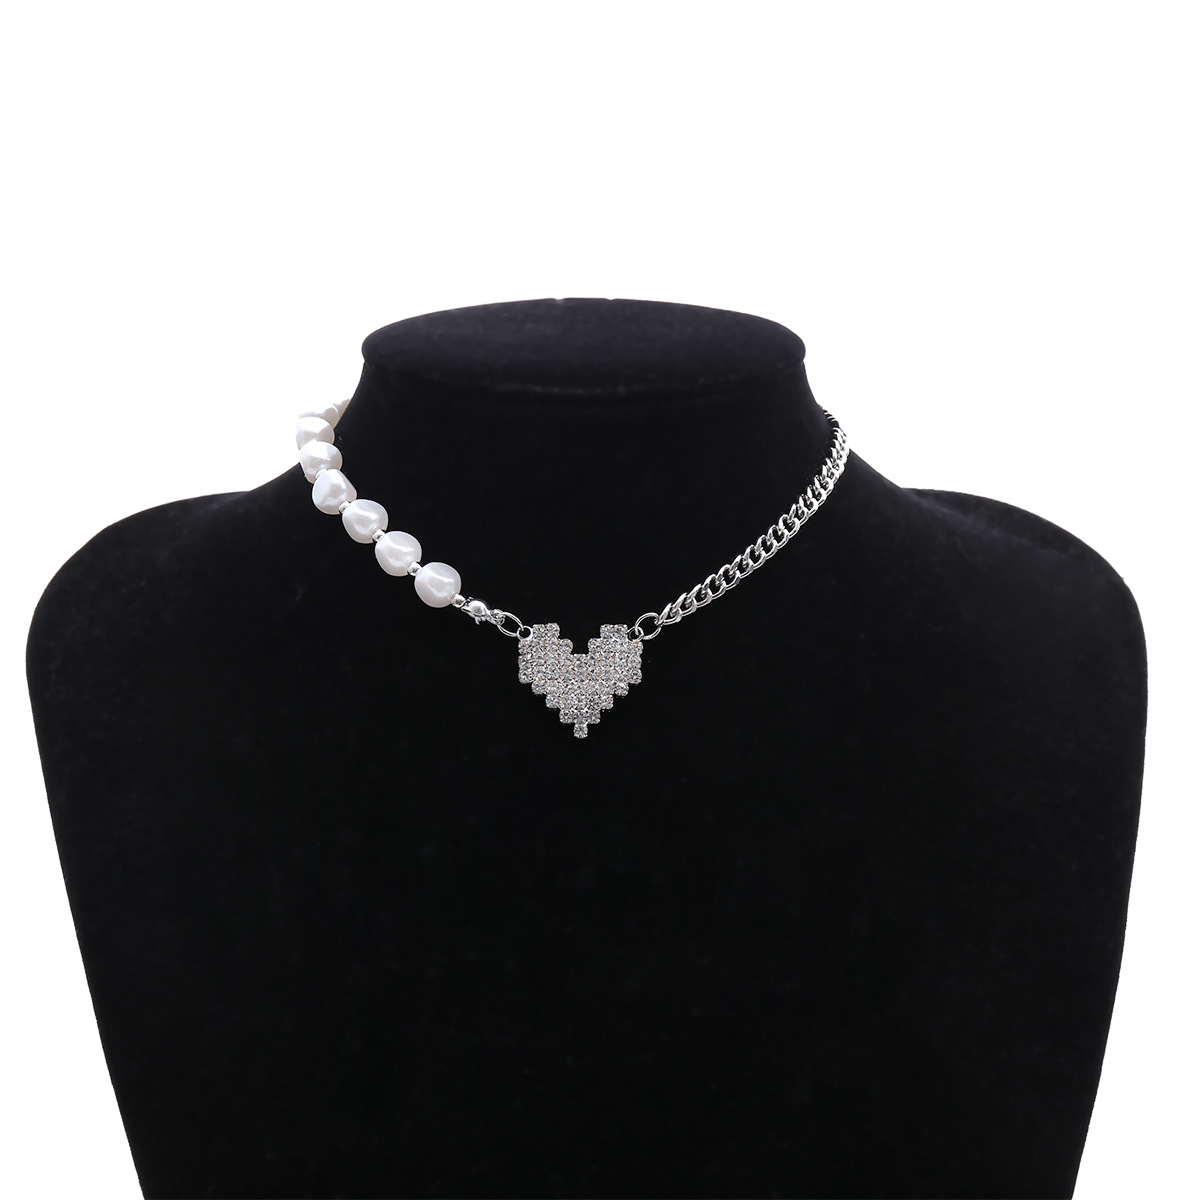 fashion jewelry personality imitation pearl chain necklace creative ins micro-set heart-shaped asymmetric necklace wholesale nihaojewelry NHXR225453